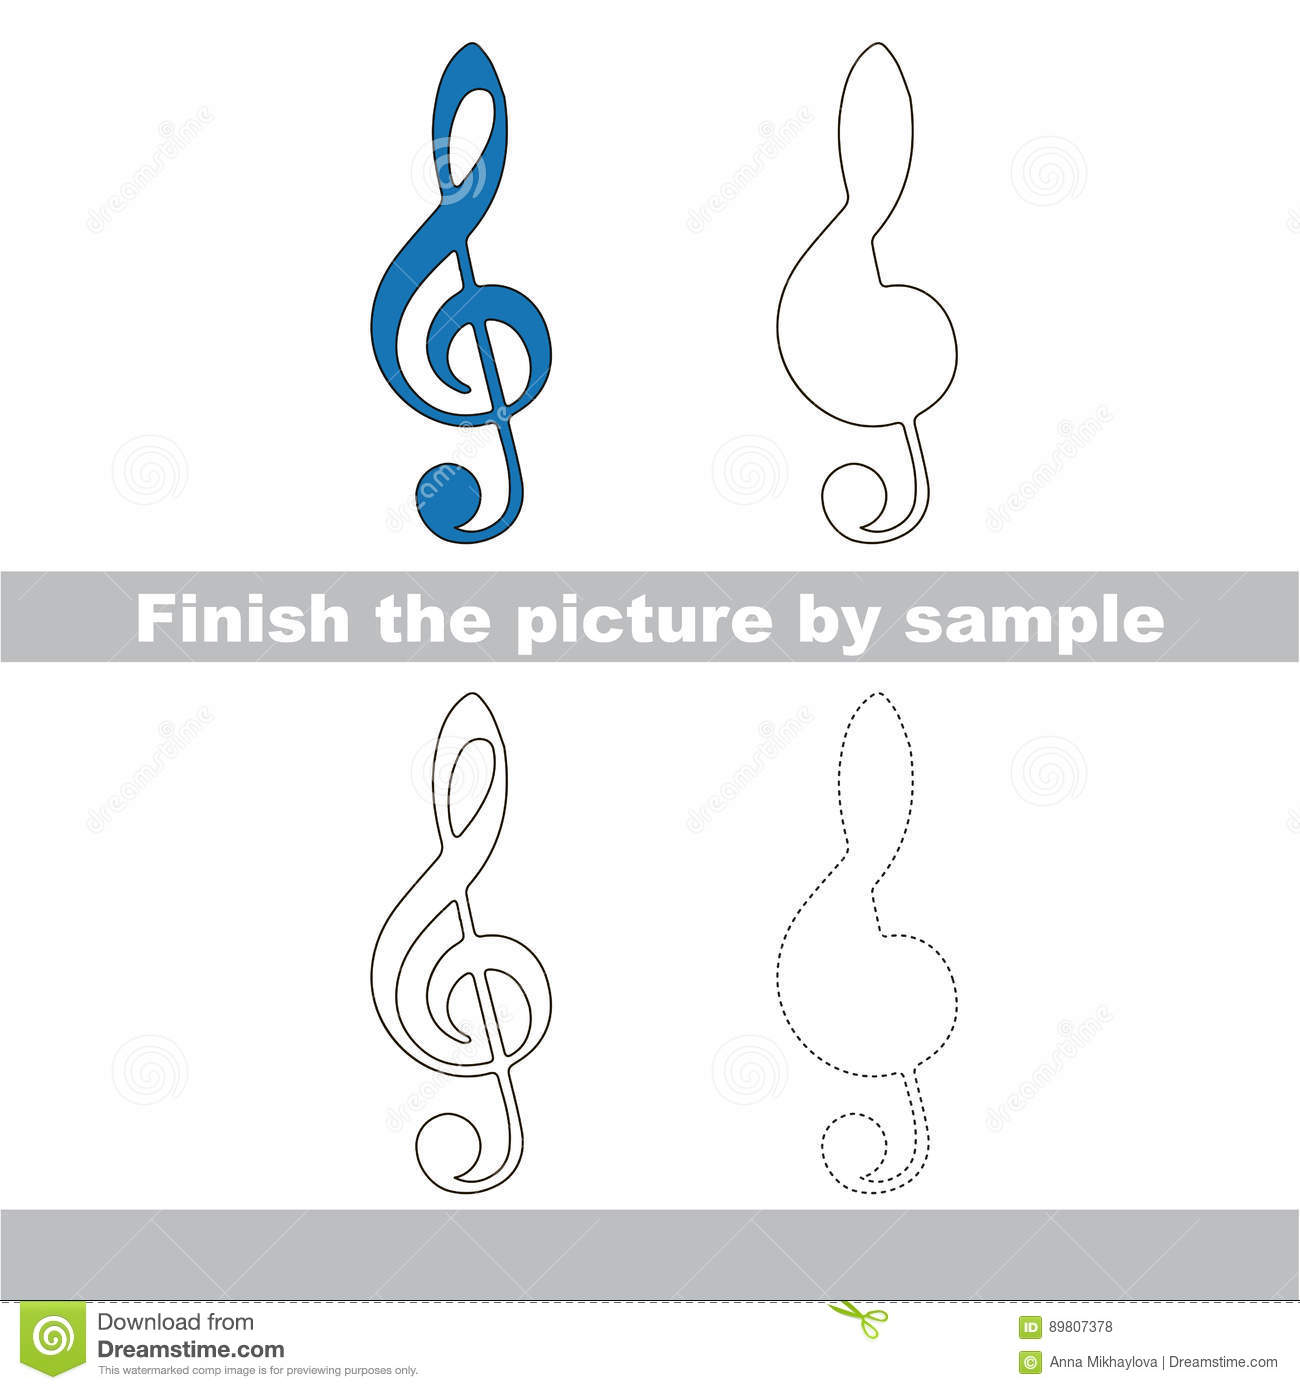 worksheet Kids Drawing Worksheet kid drawing worksheet to complete picture by sample stock vector sample